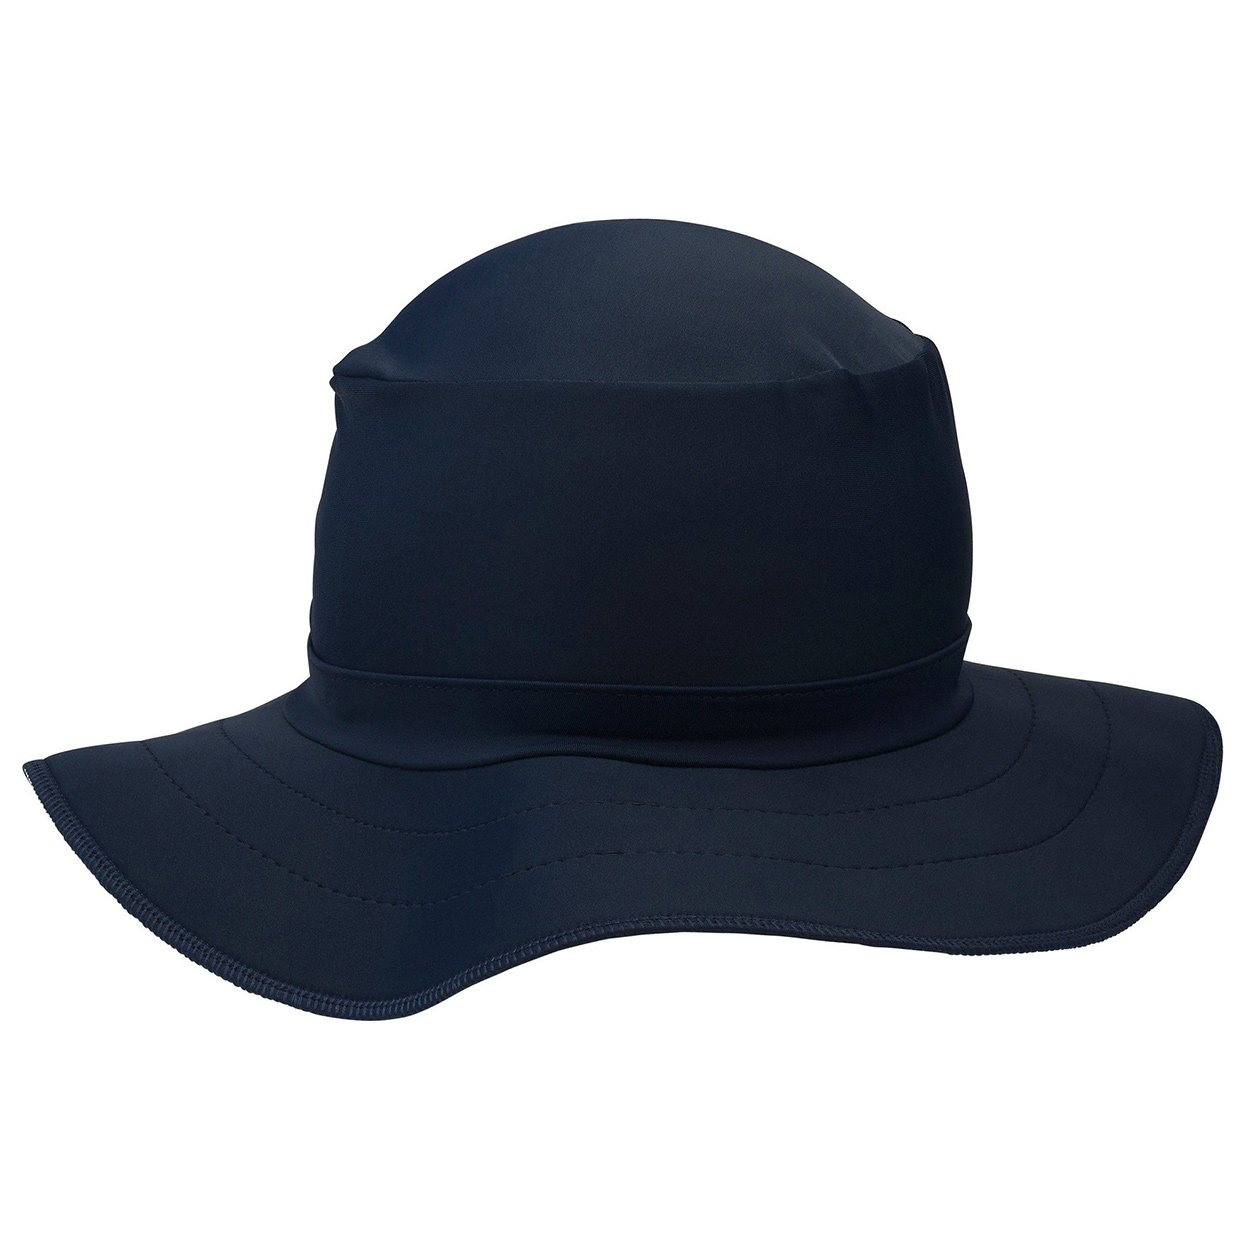 Navy Funky Bucket Hat Upf 50+